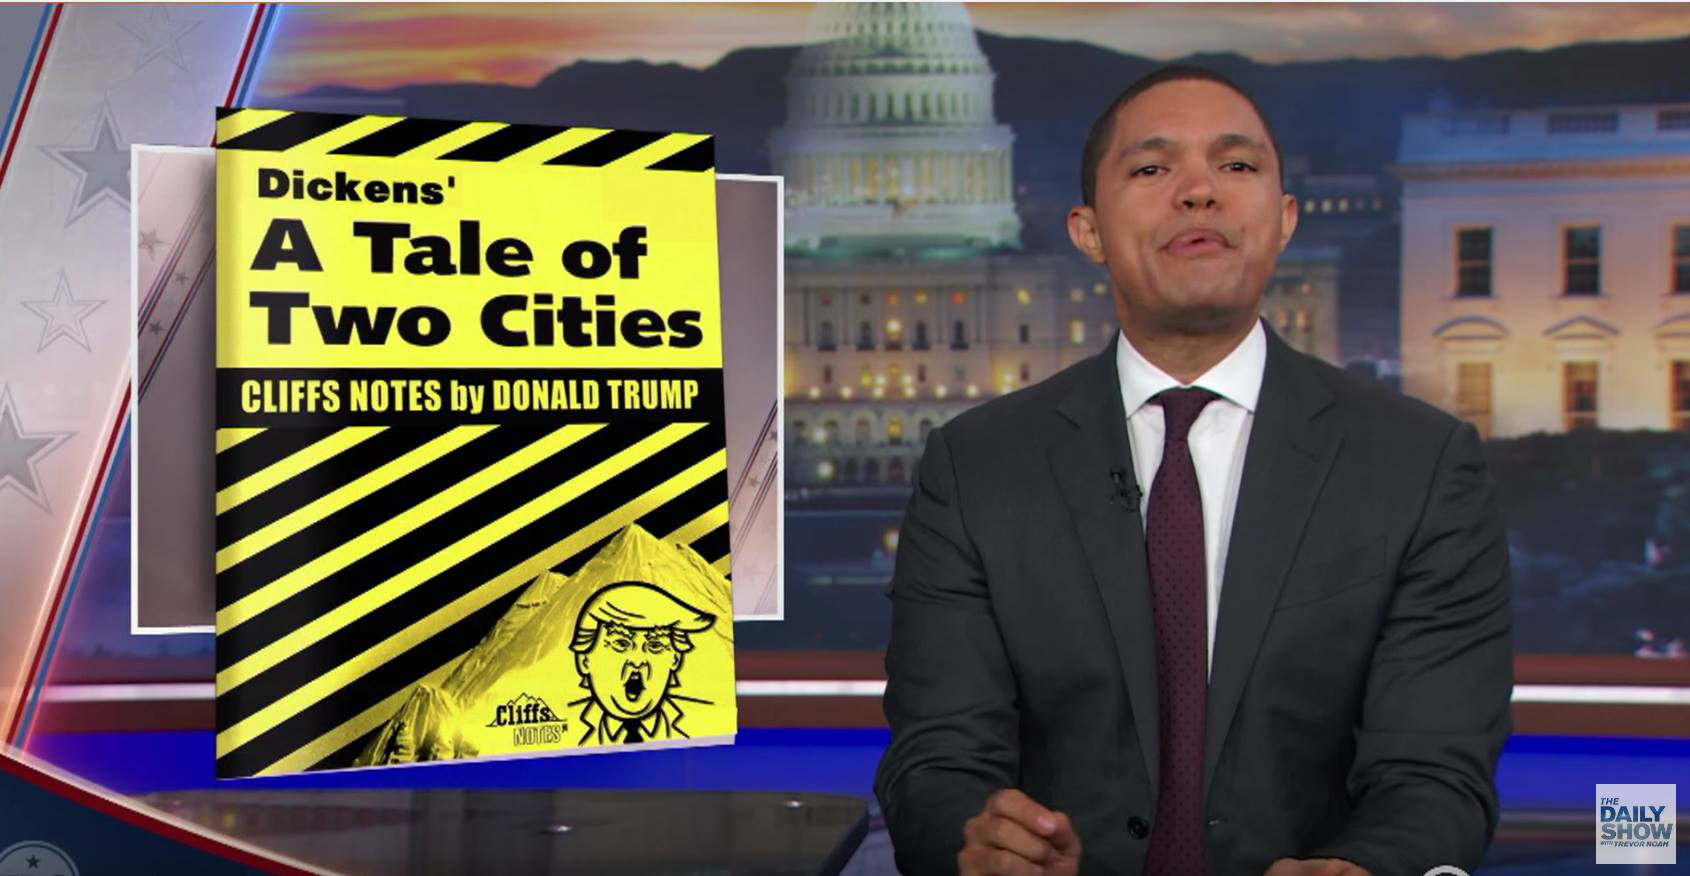 Trump icon on The Daily Show with Trevor Noah